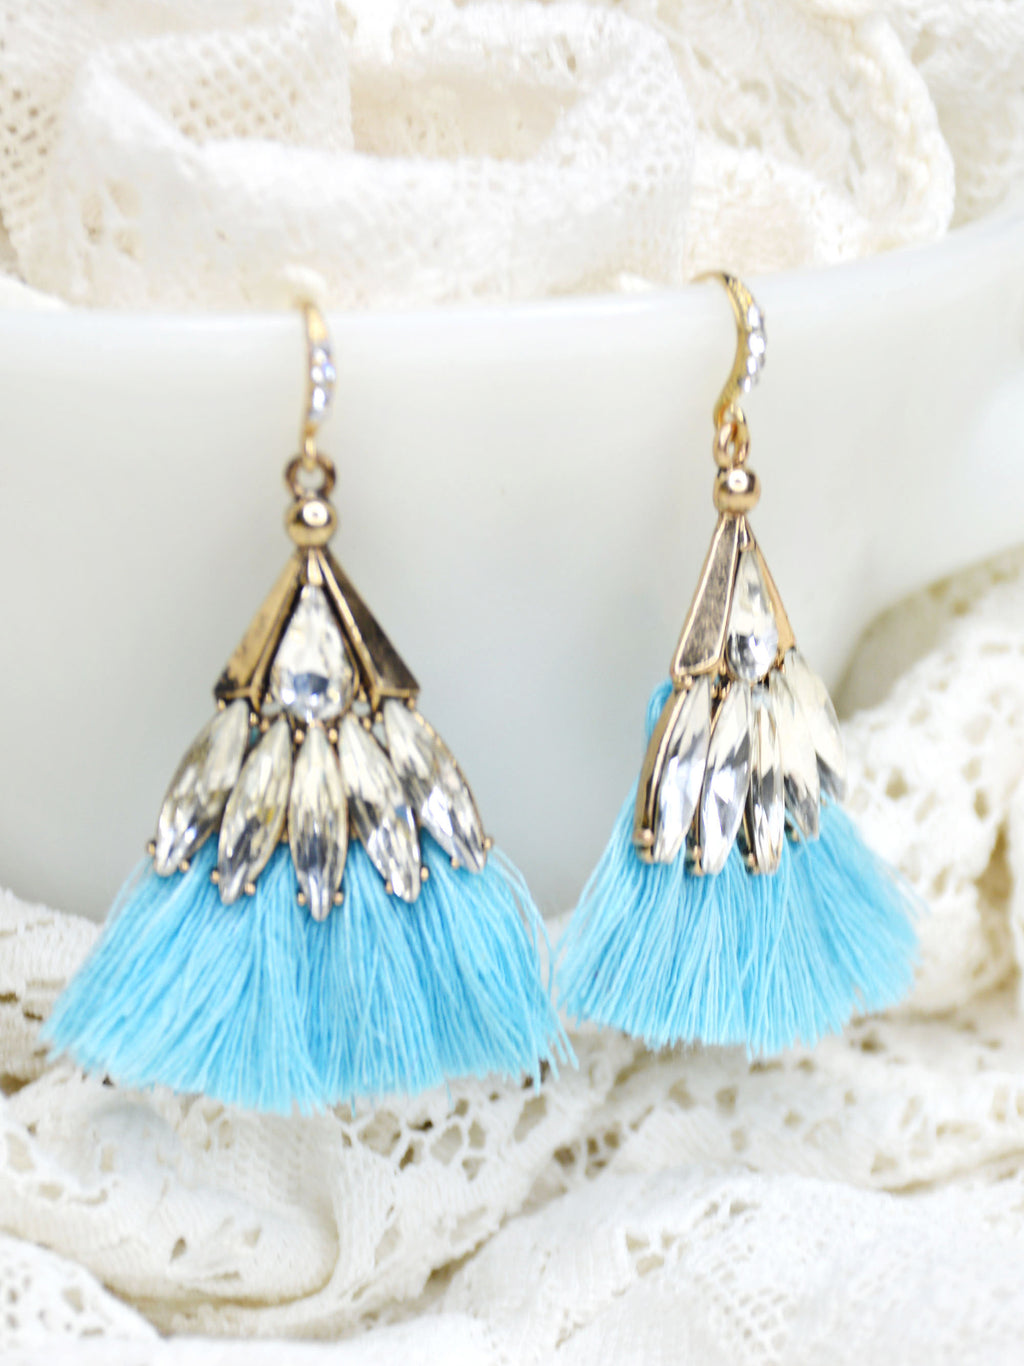 Blue and gold tassel earrings with crystals.